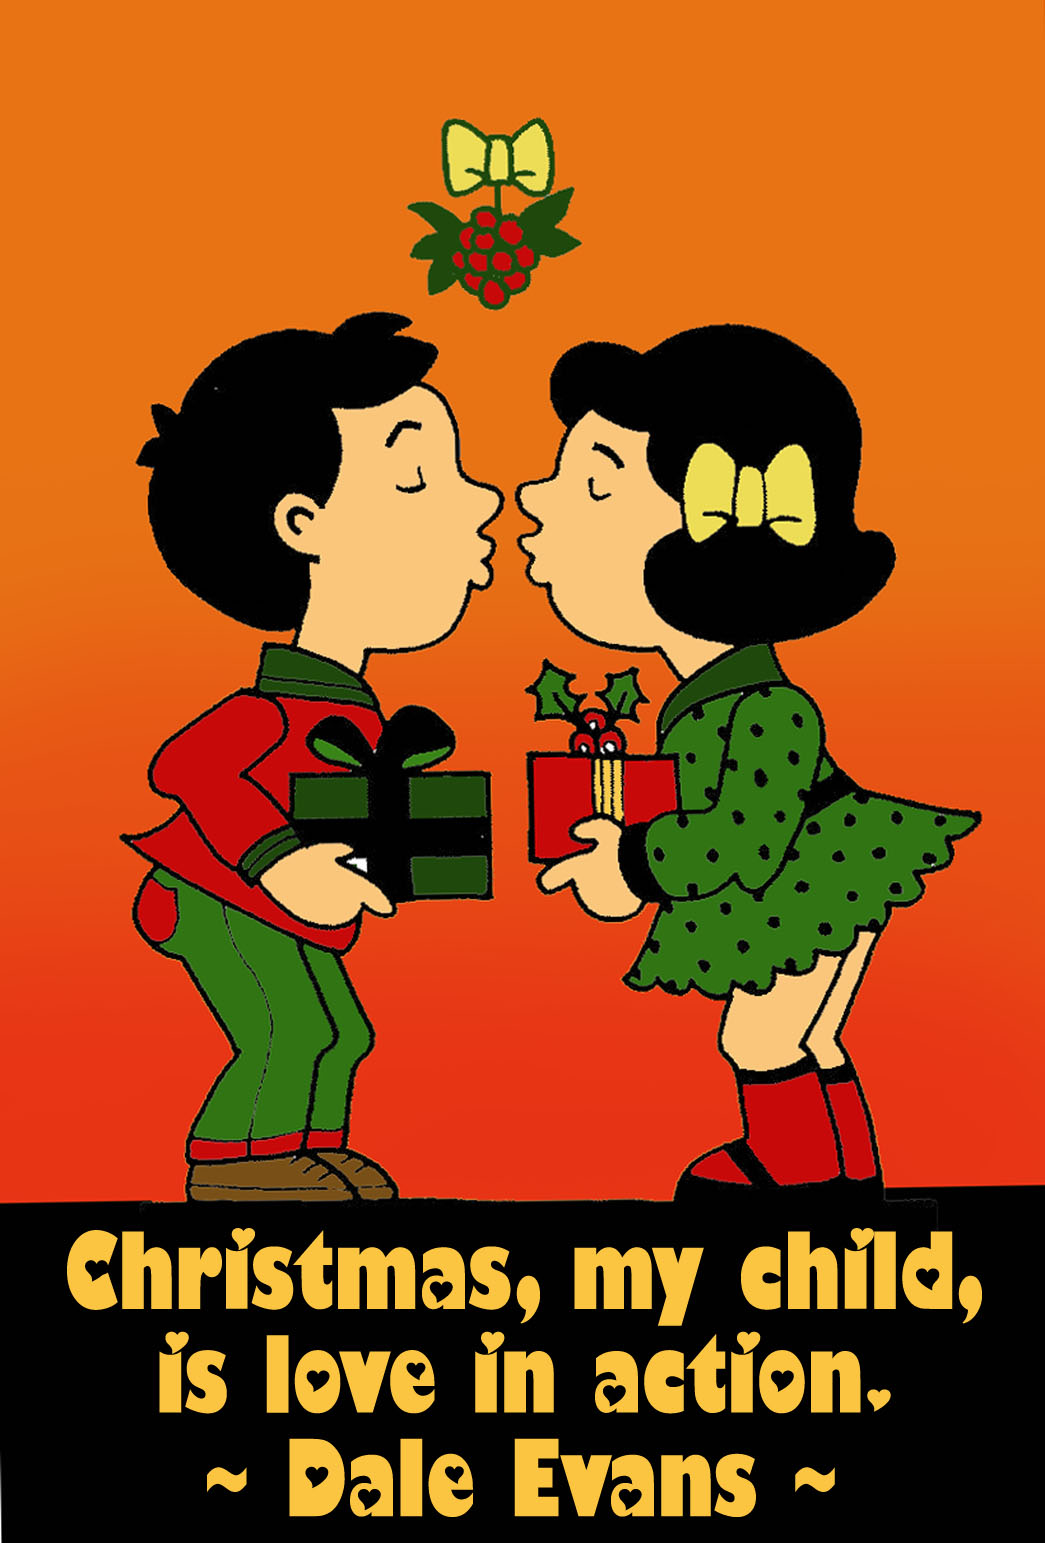 Christmas greeting card with love quote: Christmas my child, is love in action.